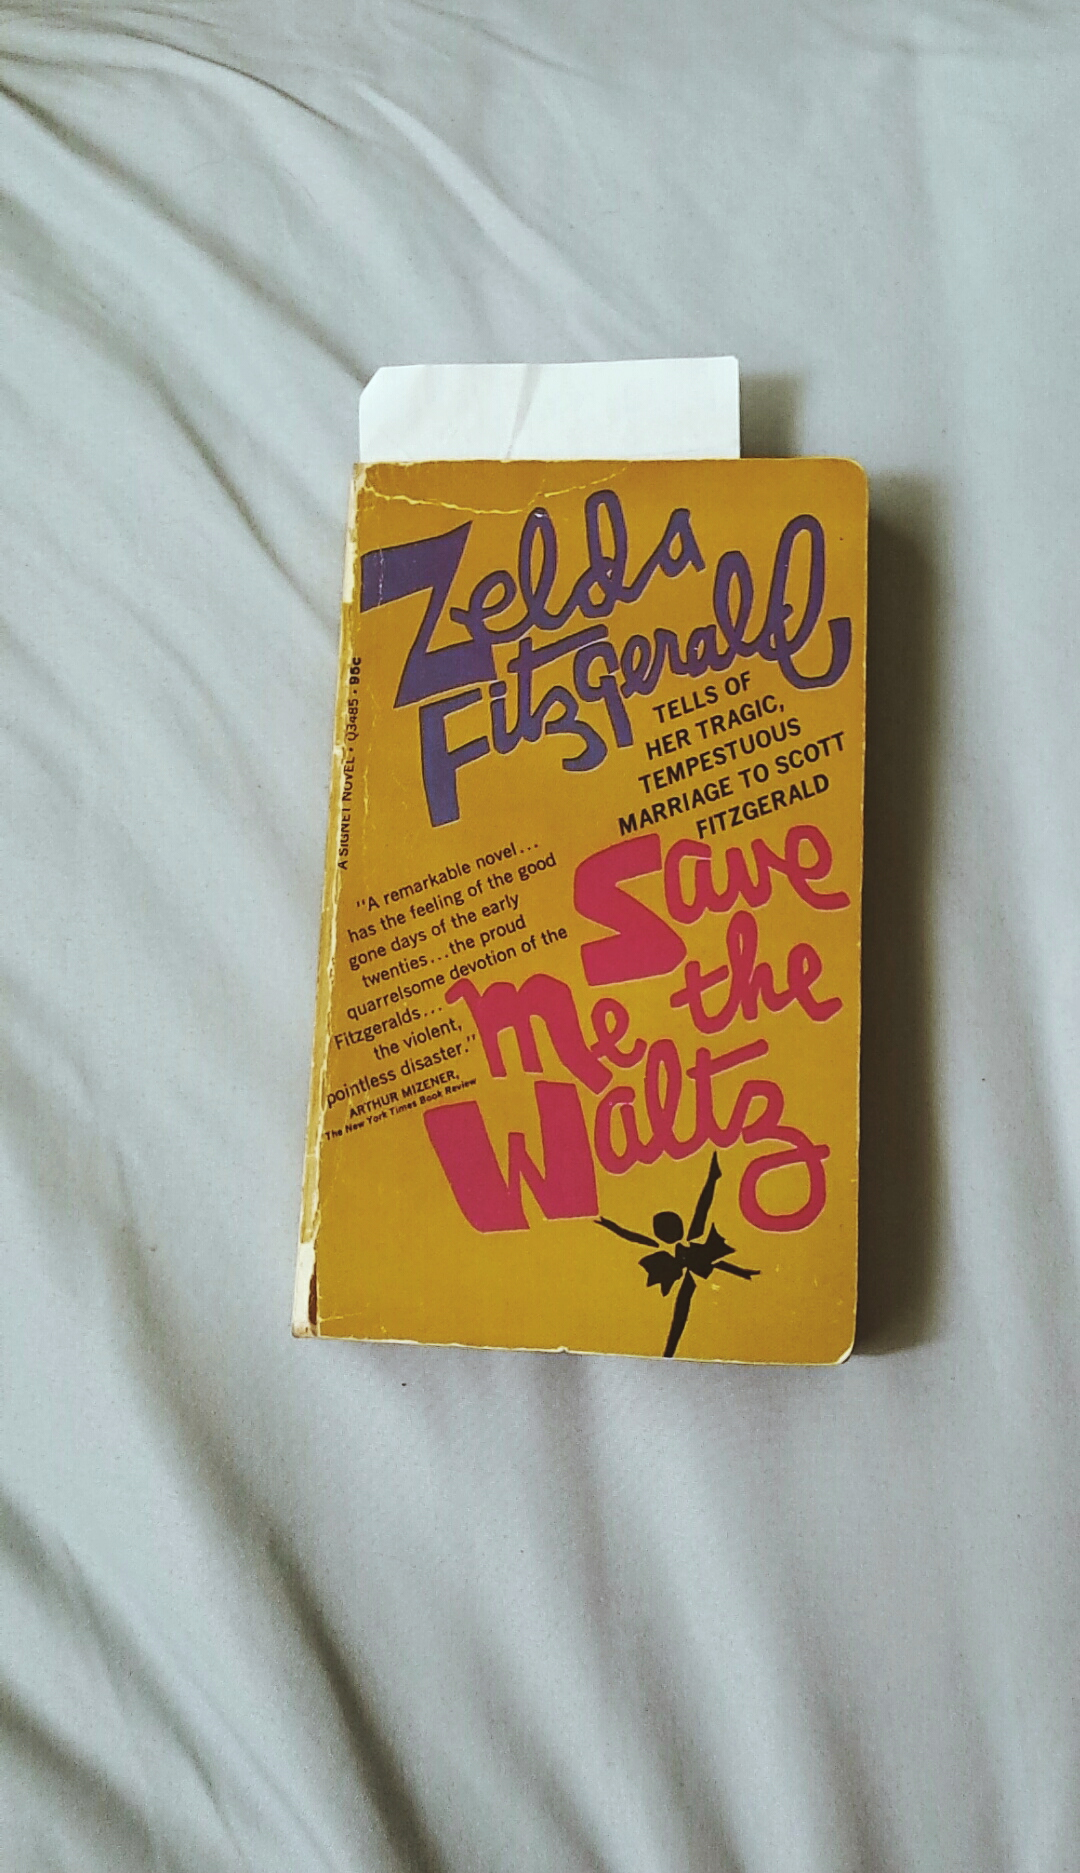 My beaten up copy of the book